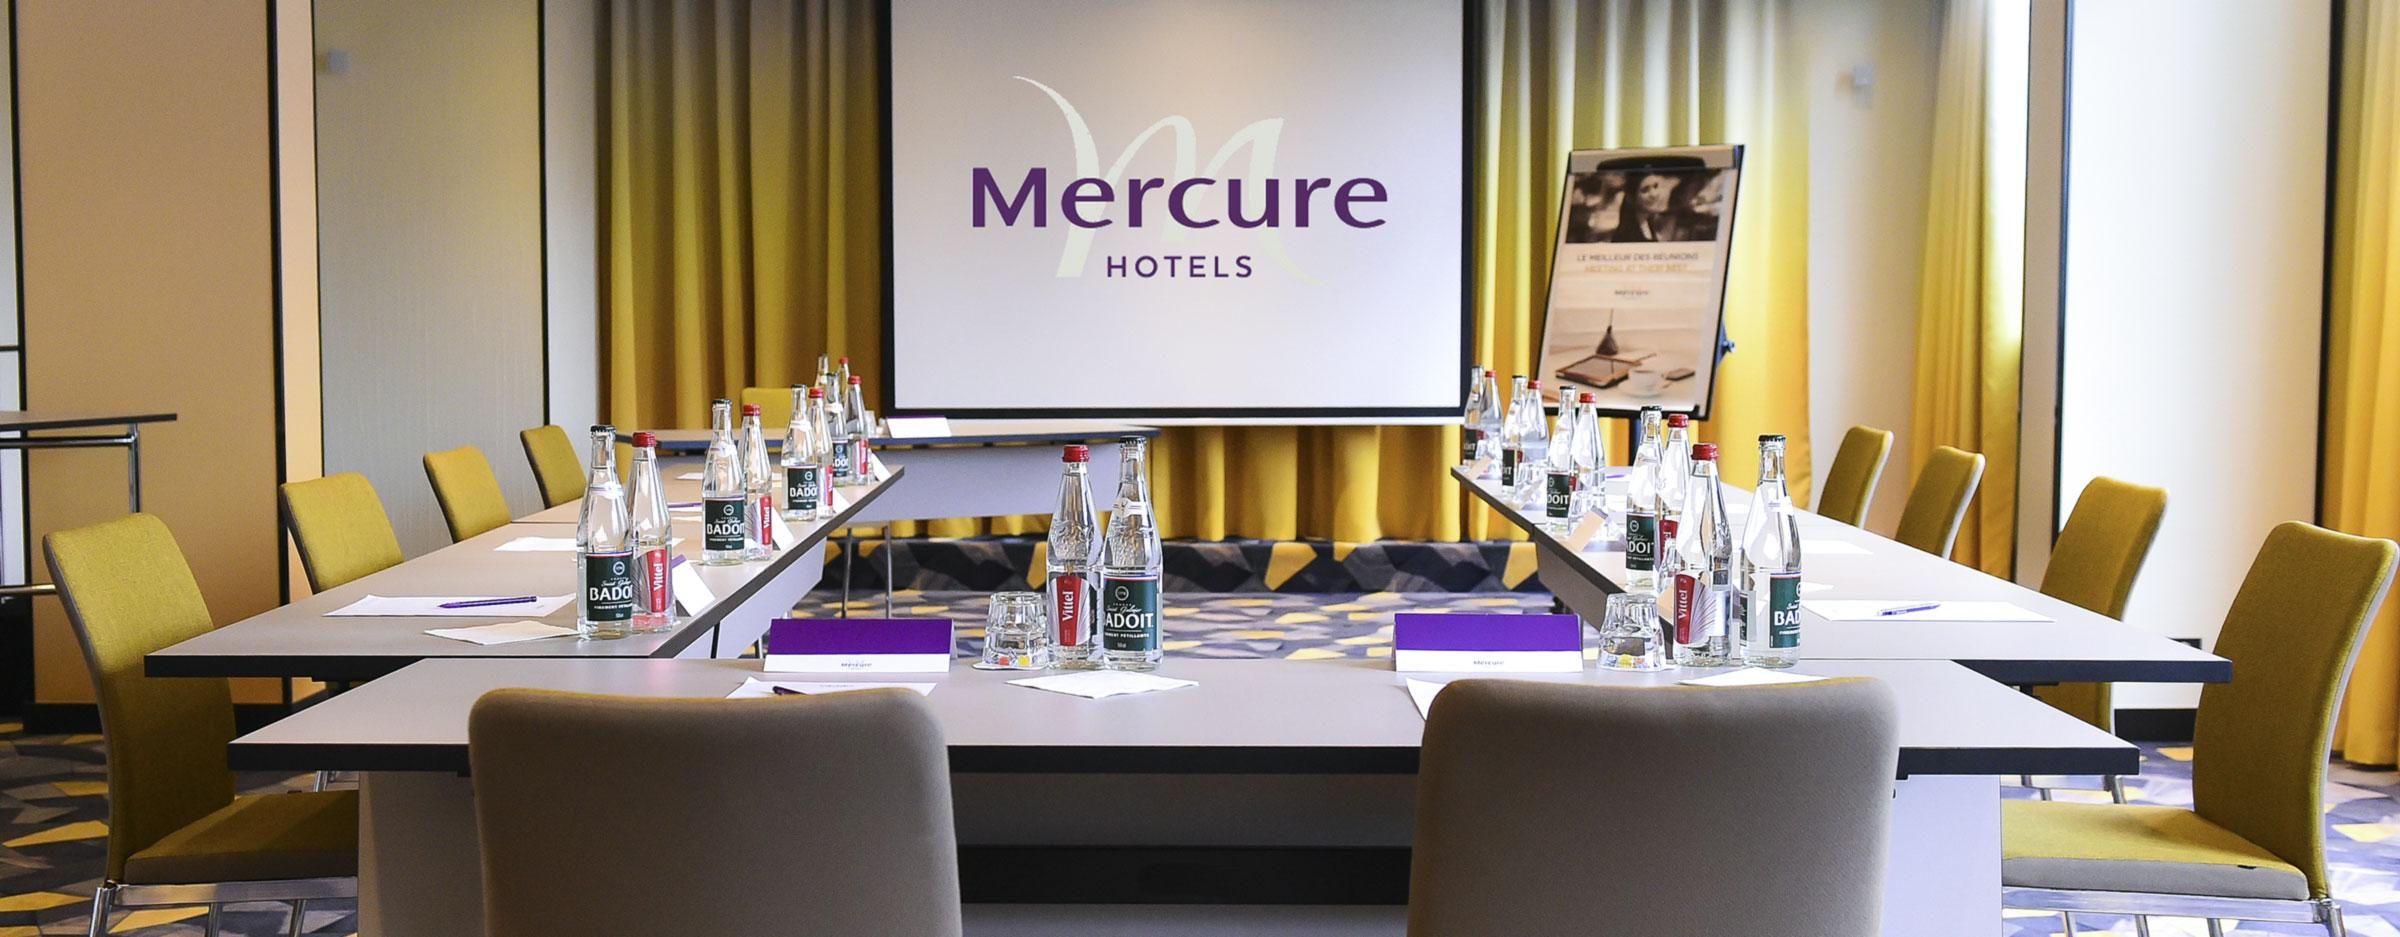 Mercure Dijon Meeting Room